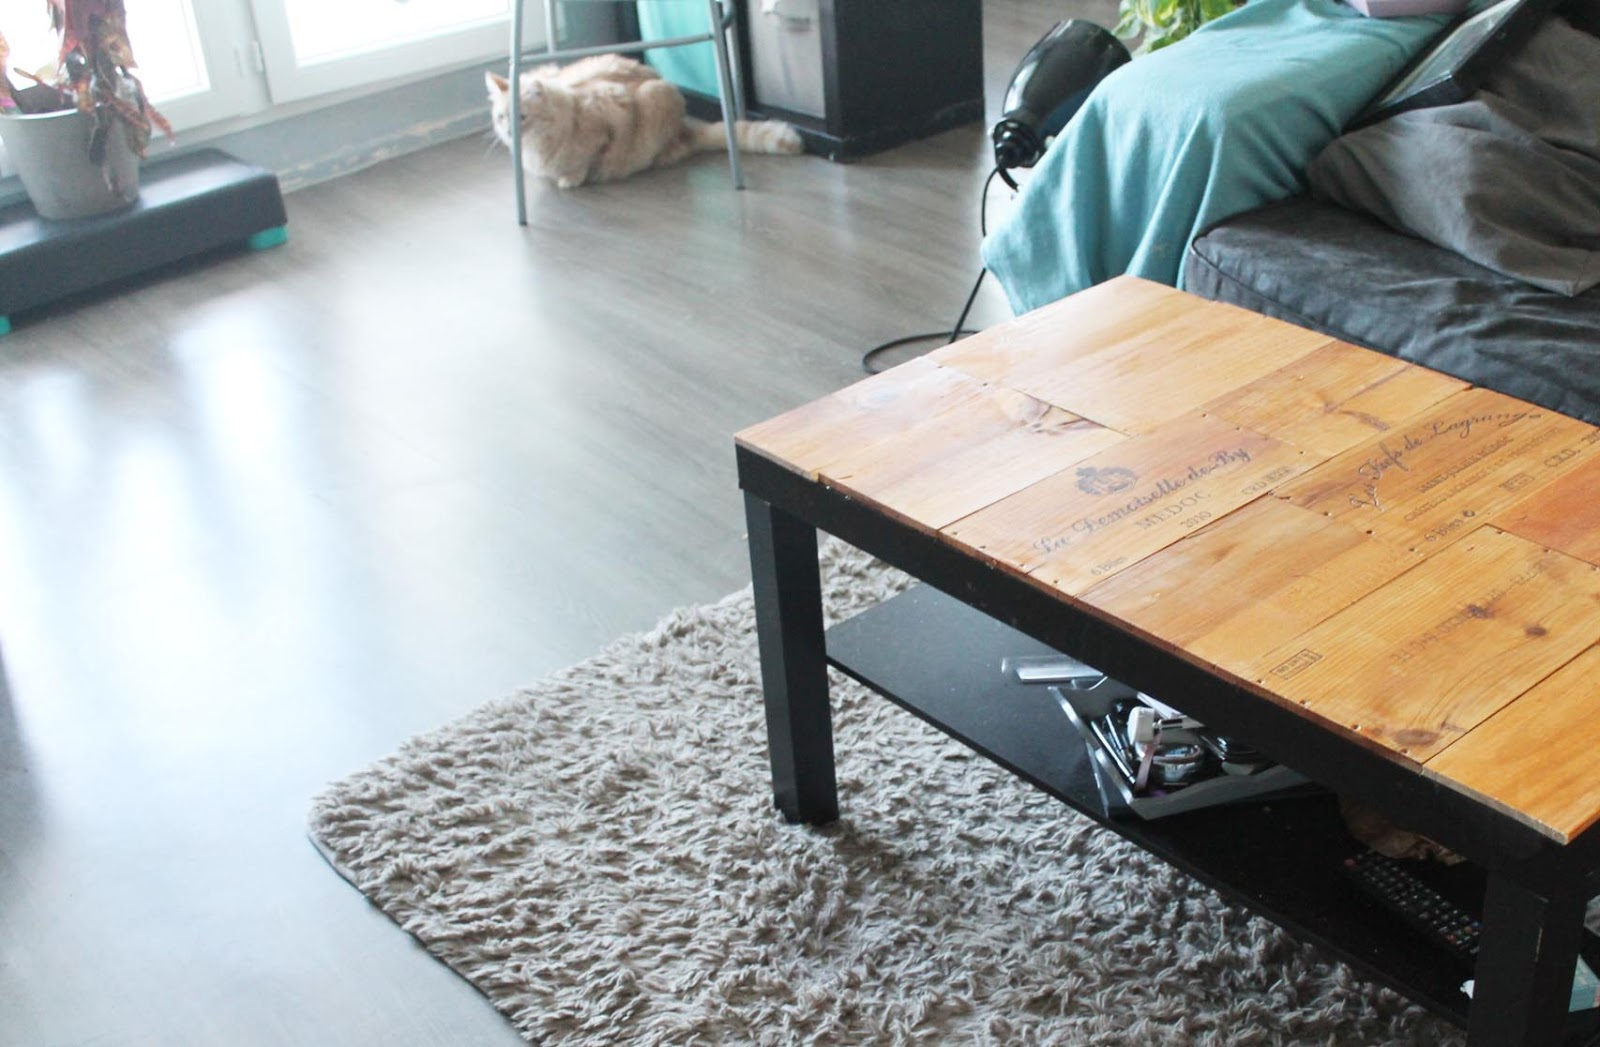 Transformer Meuble Ikea Customise Ta Table Basse Avec Des Caisses De Vin